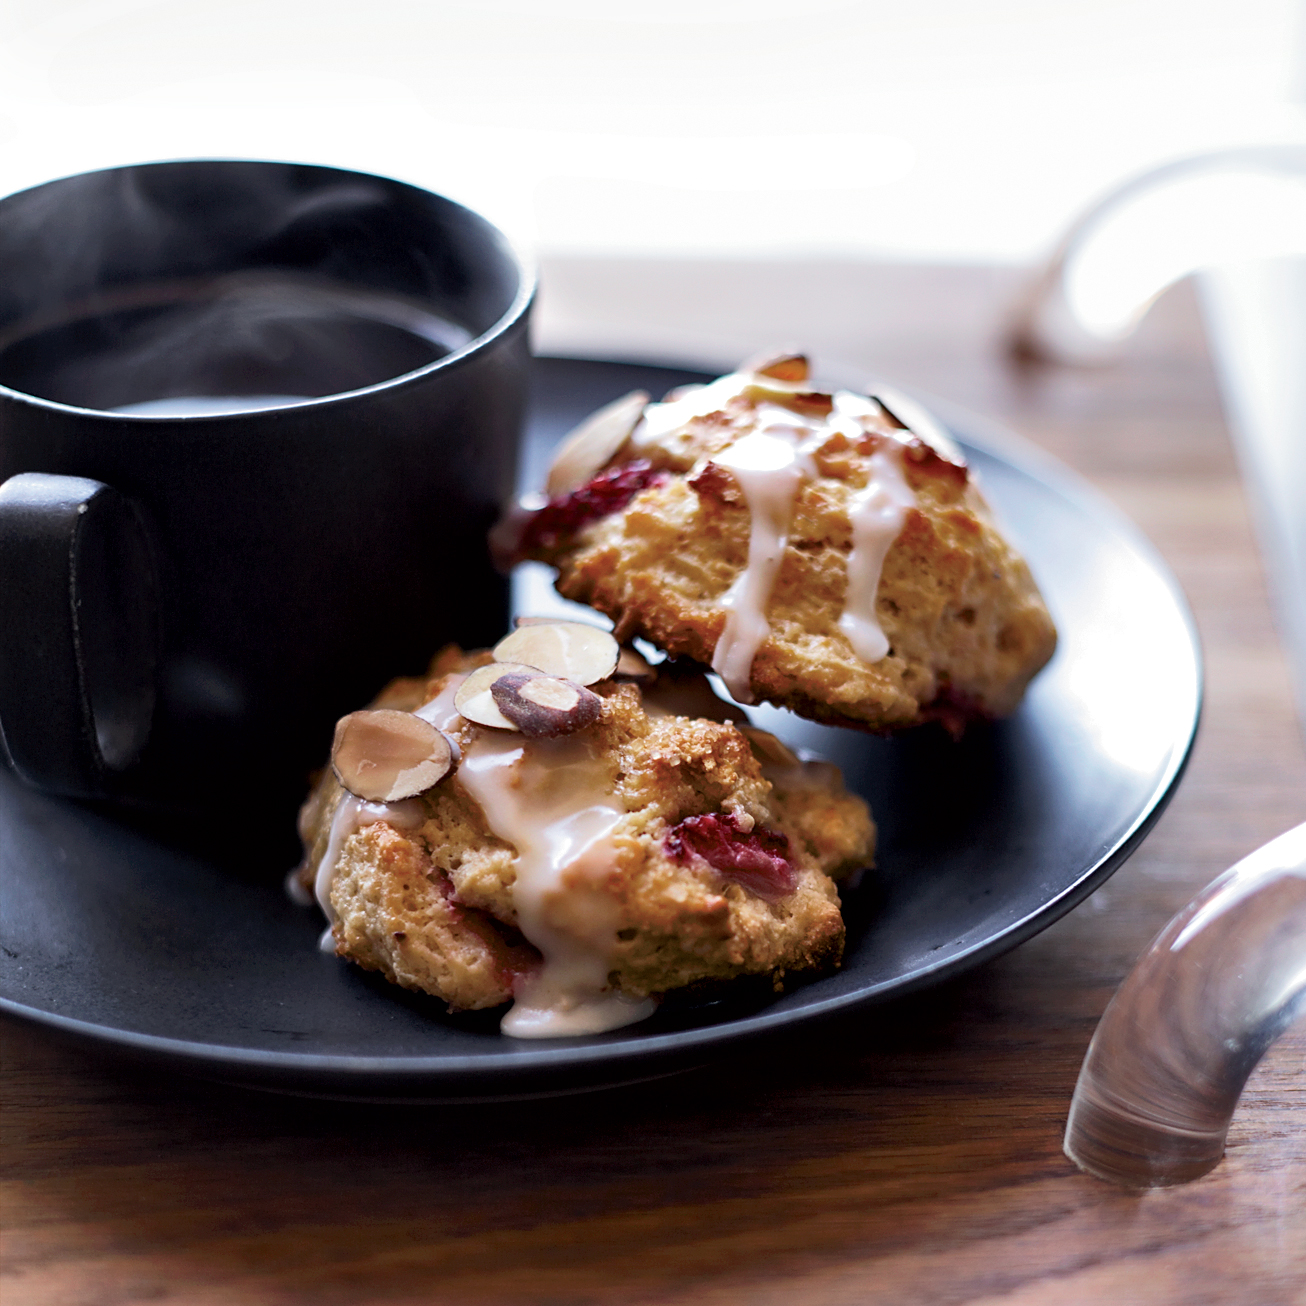 Brunch Recipes: Strawberry-Almond Scones